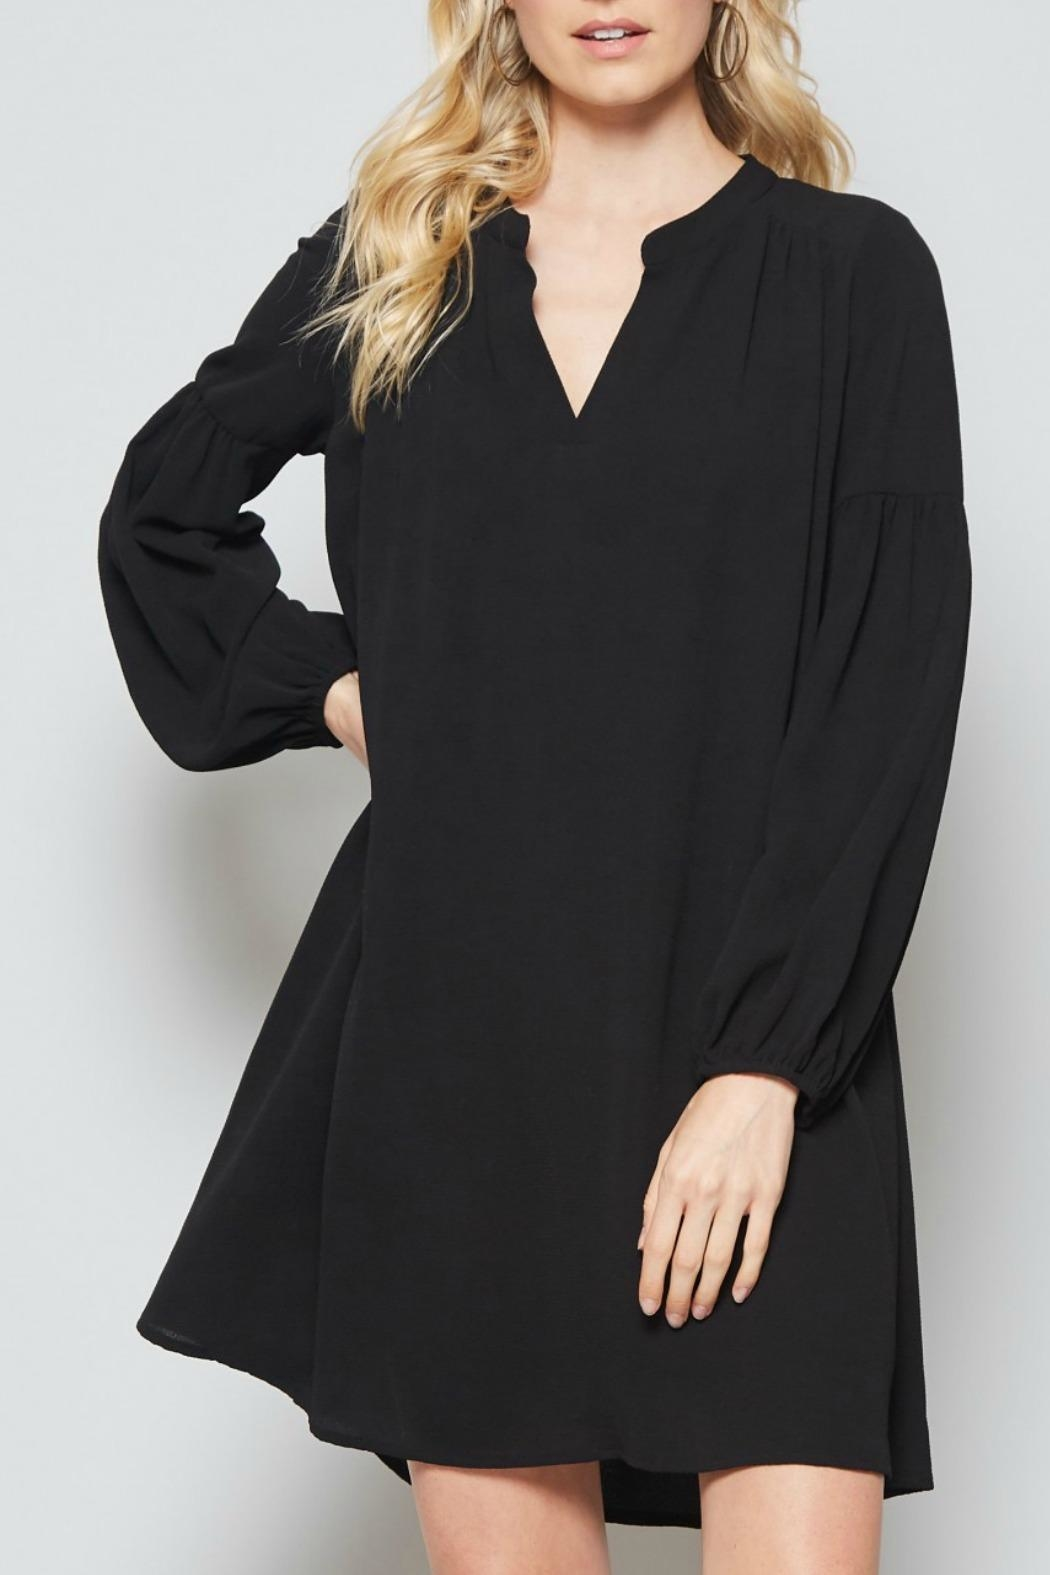 Andree by Unit Black Shift Dress - Main Image